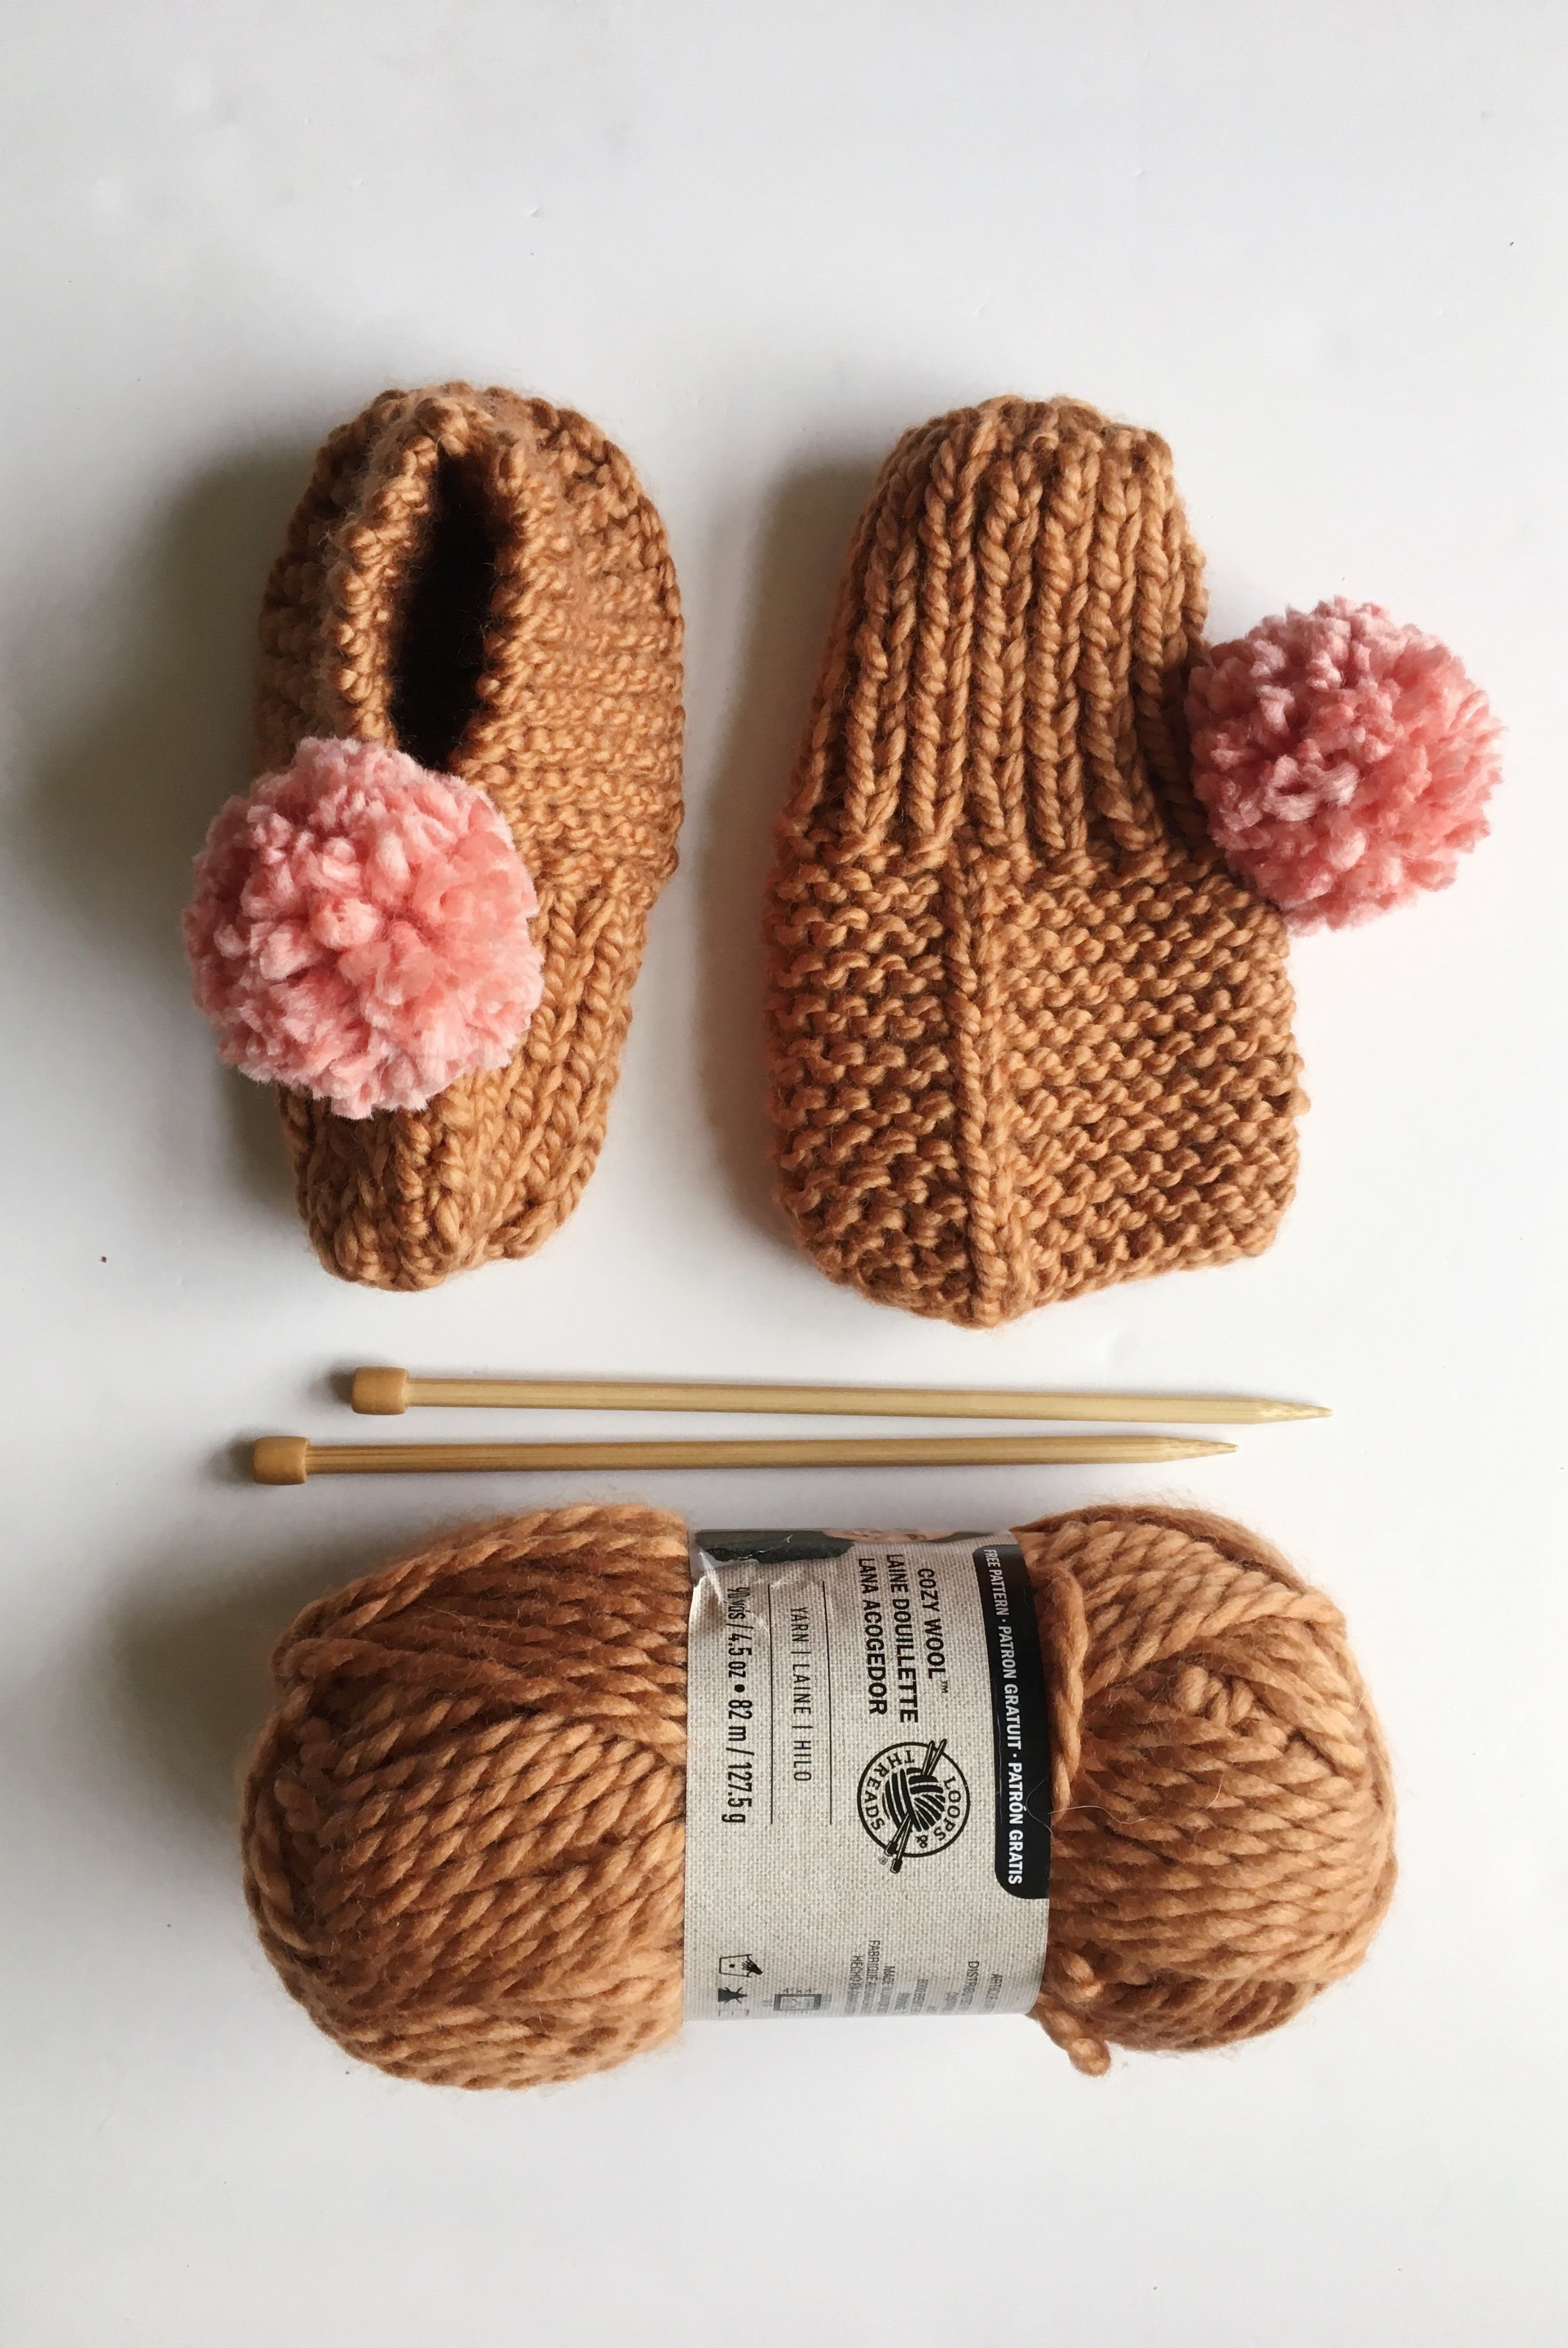 Materials you will need for the knit slippers